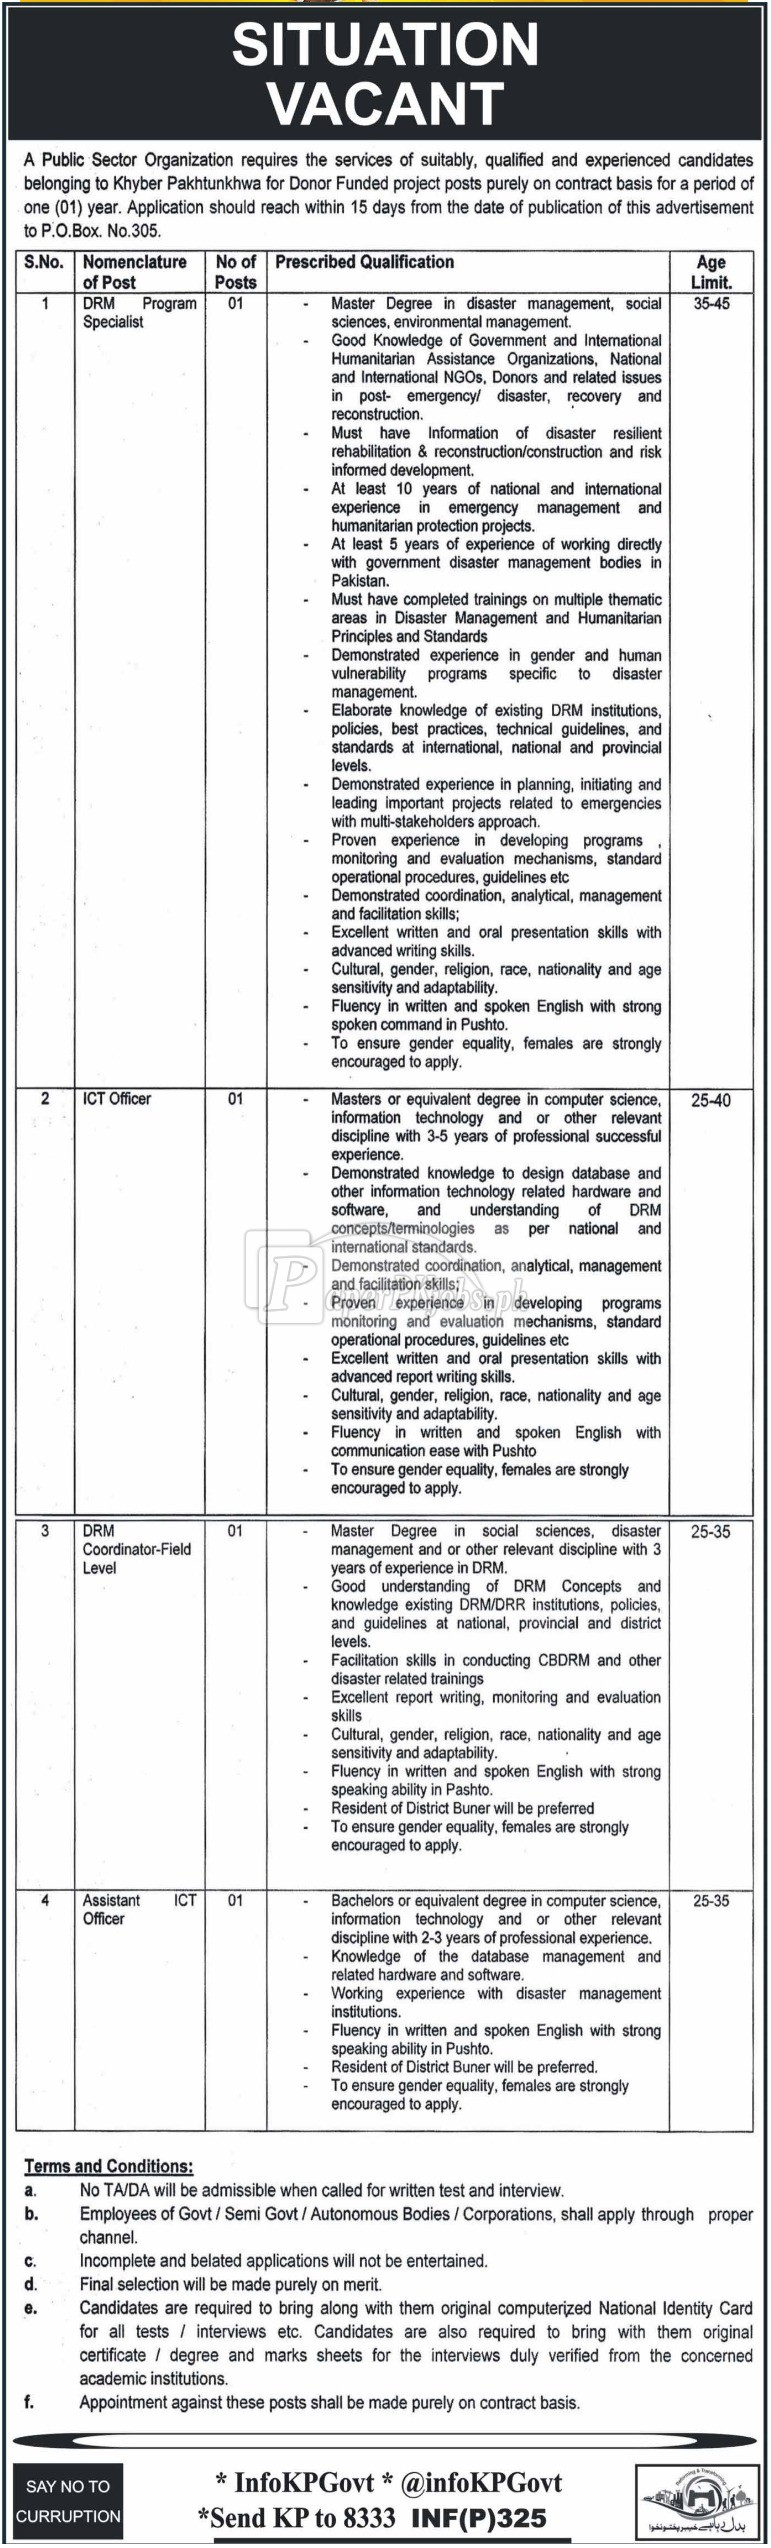 Public Sector Organization P.O.Box 305 Peshawar Jobs 2018